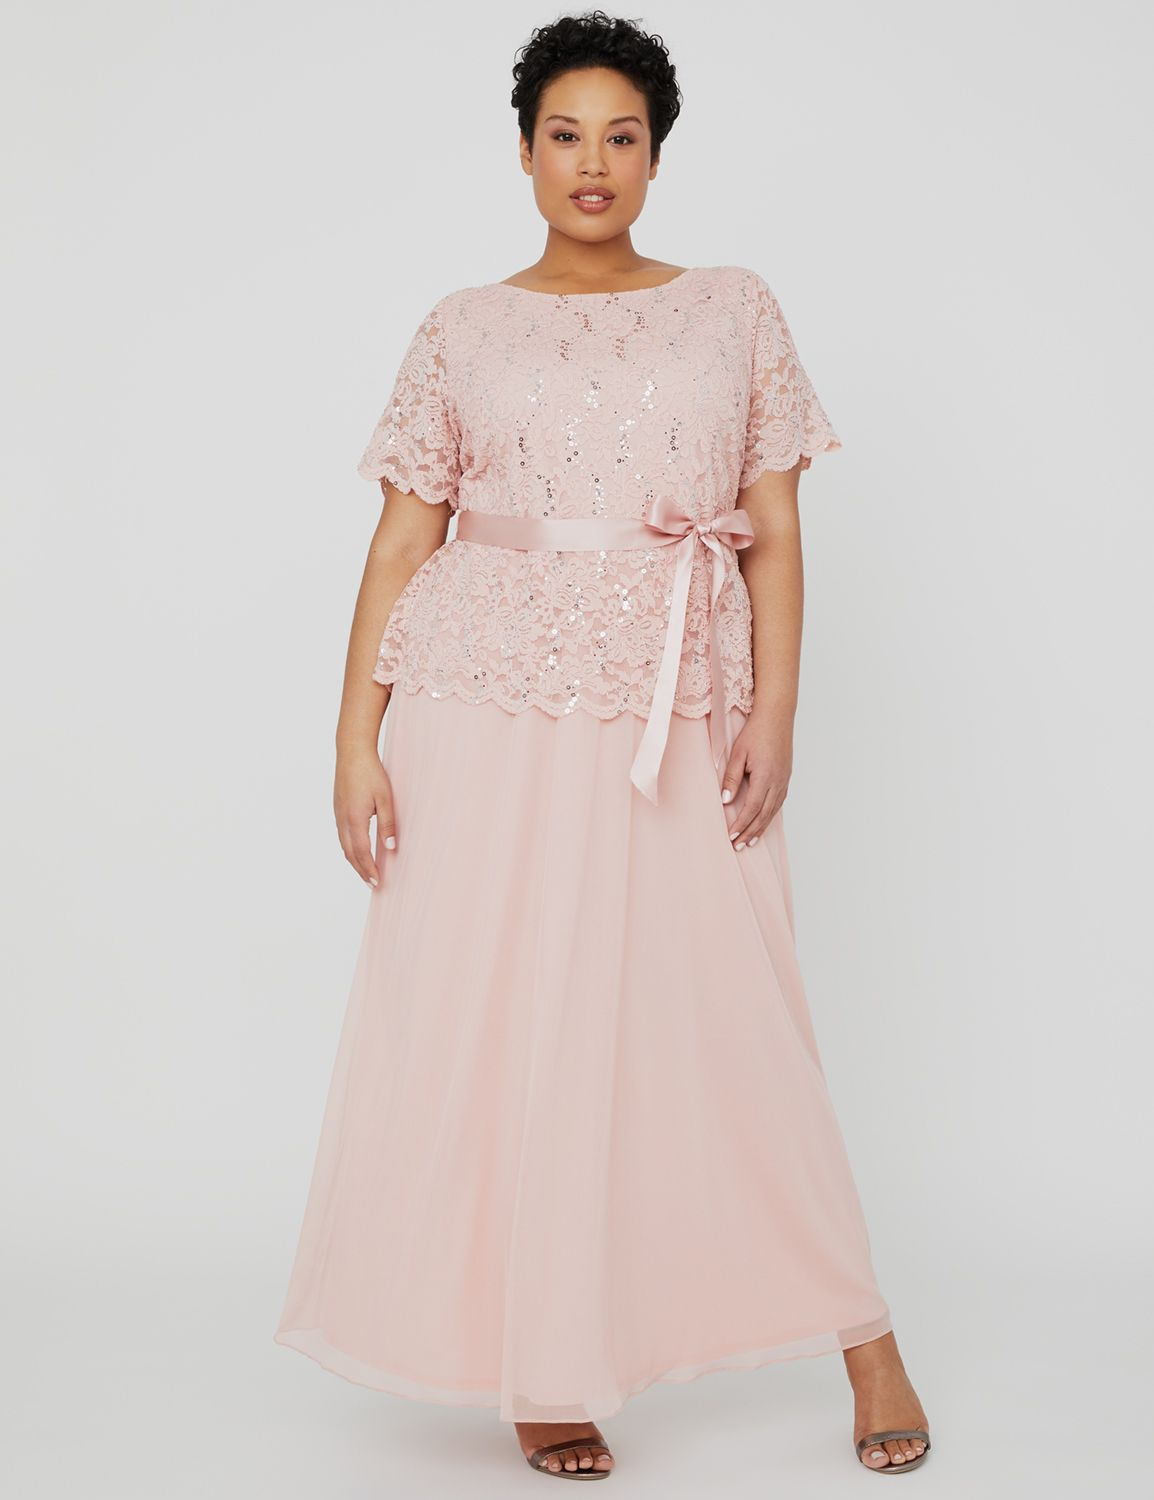 Blush Sunset Dress 1090995 Long Dress with Lace Bodice MP-300101533